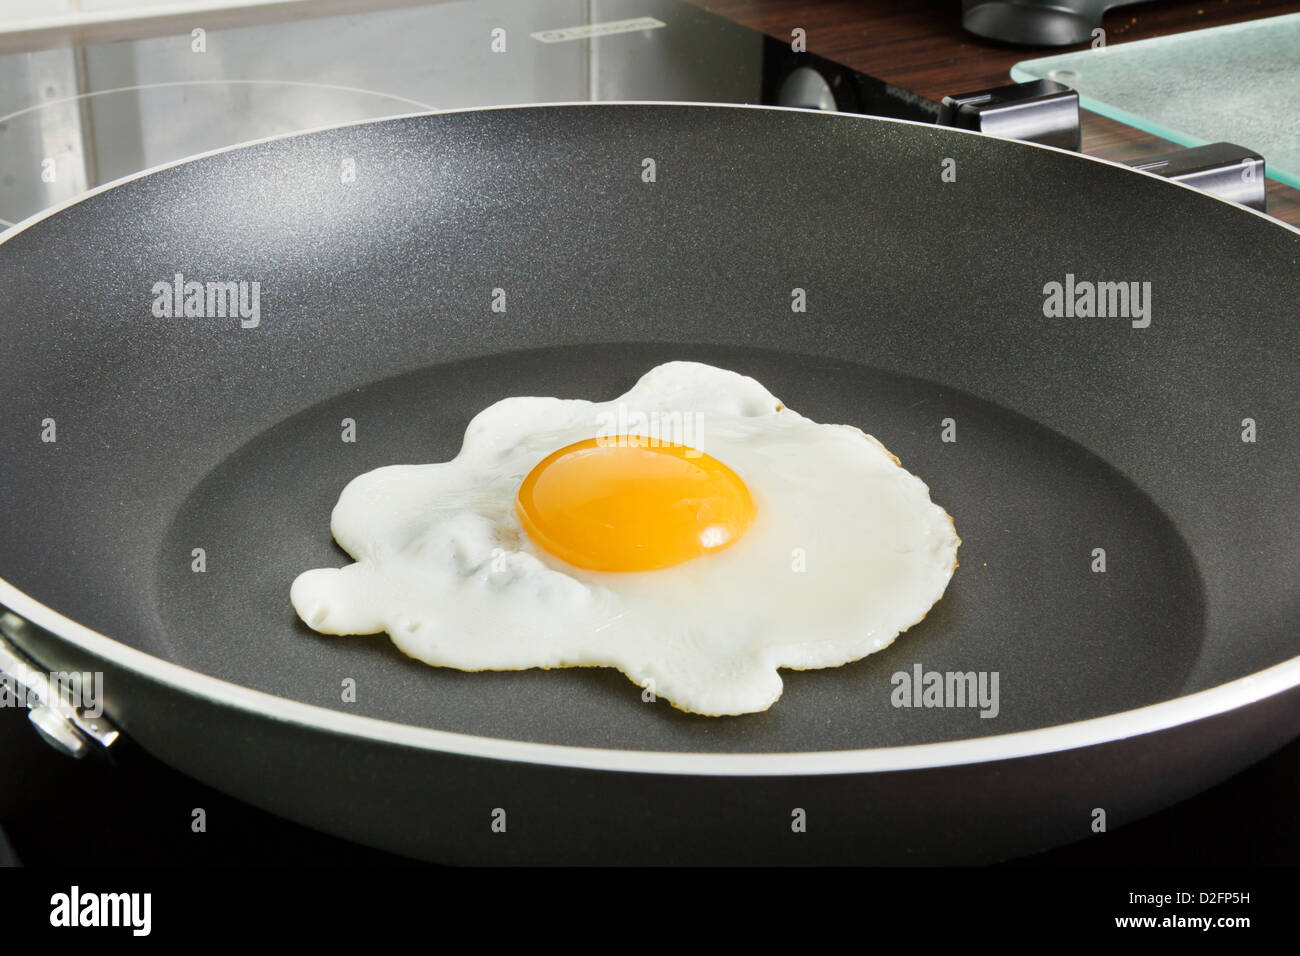 Egg frying in a frying pan on a ceramic hob - Stock Image